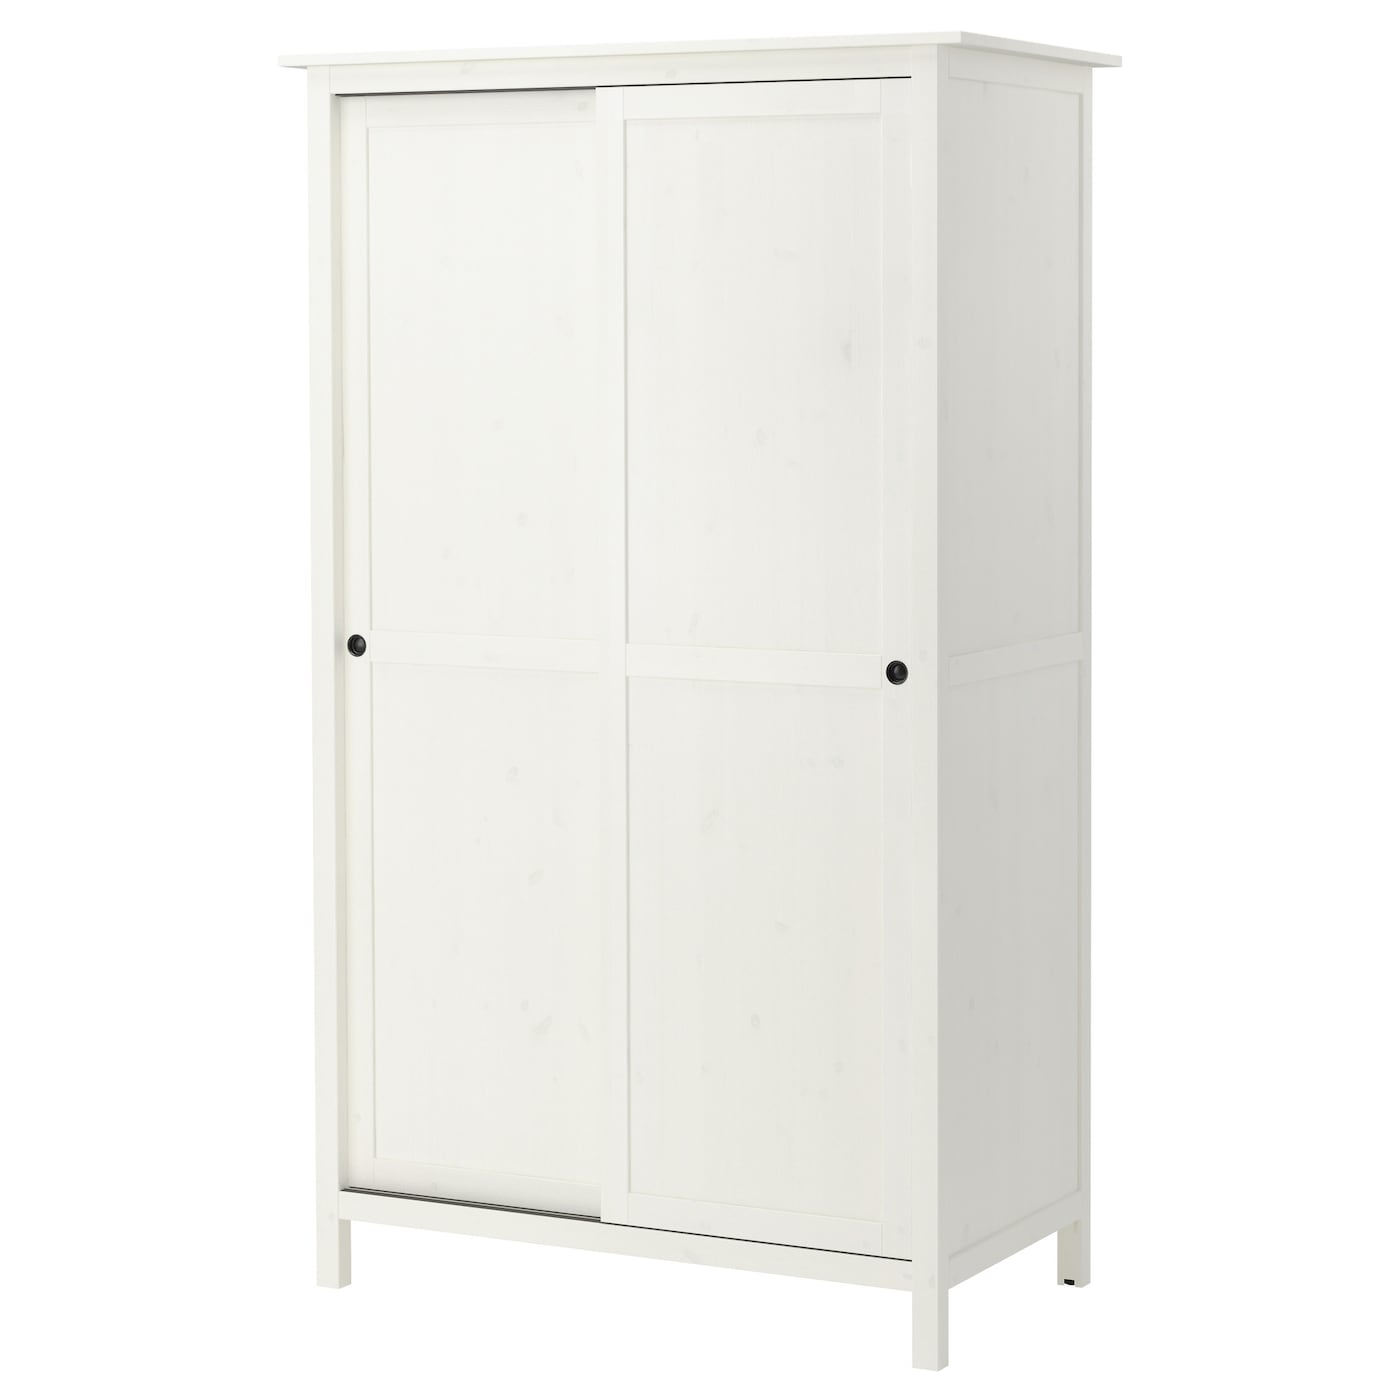 Hemnes wardrobe with 2 sliding doors white stain 120x197 - Ikea armoire porte coulissante ...